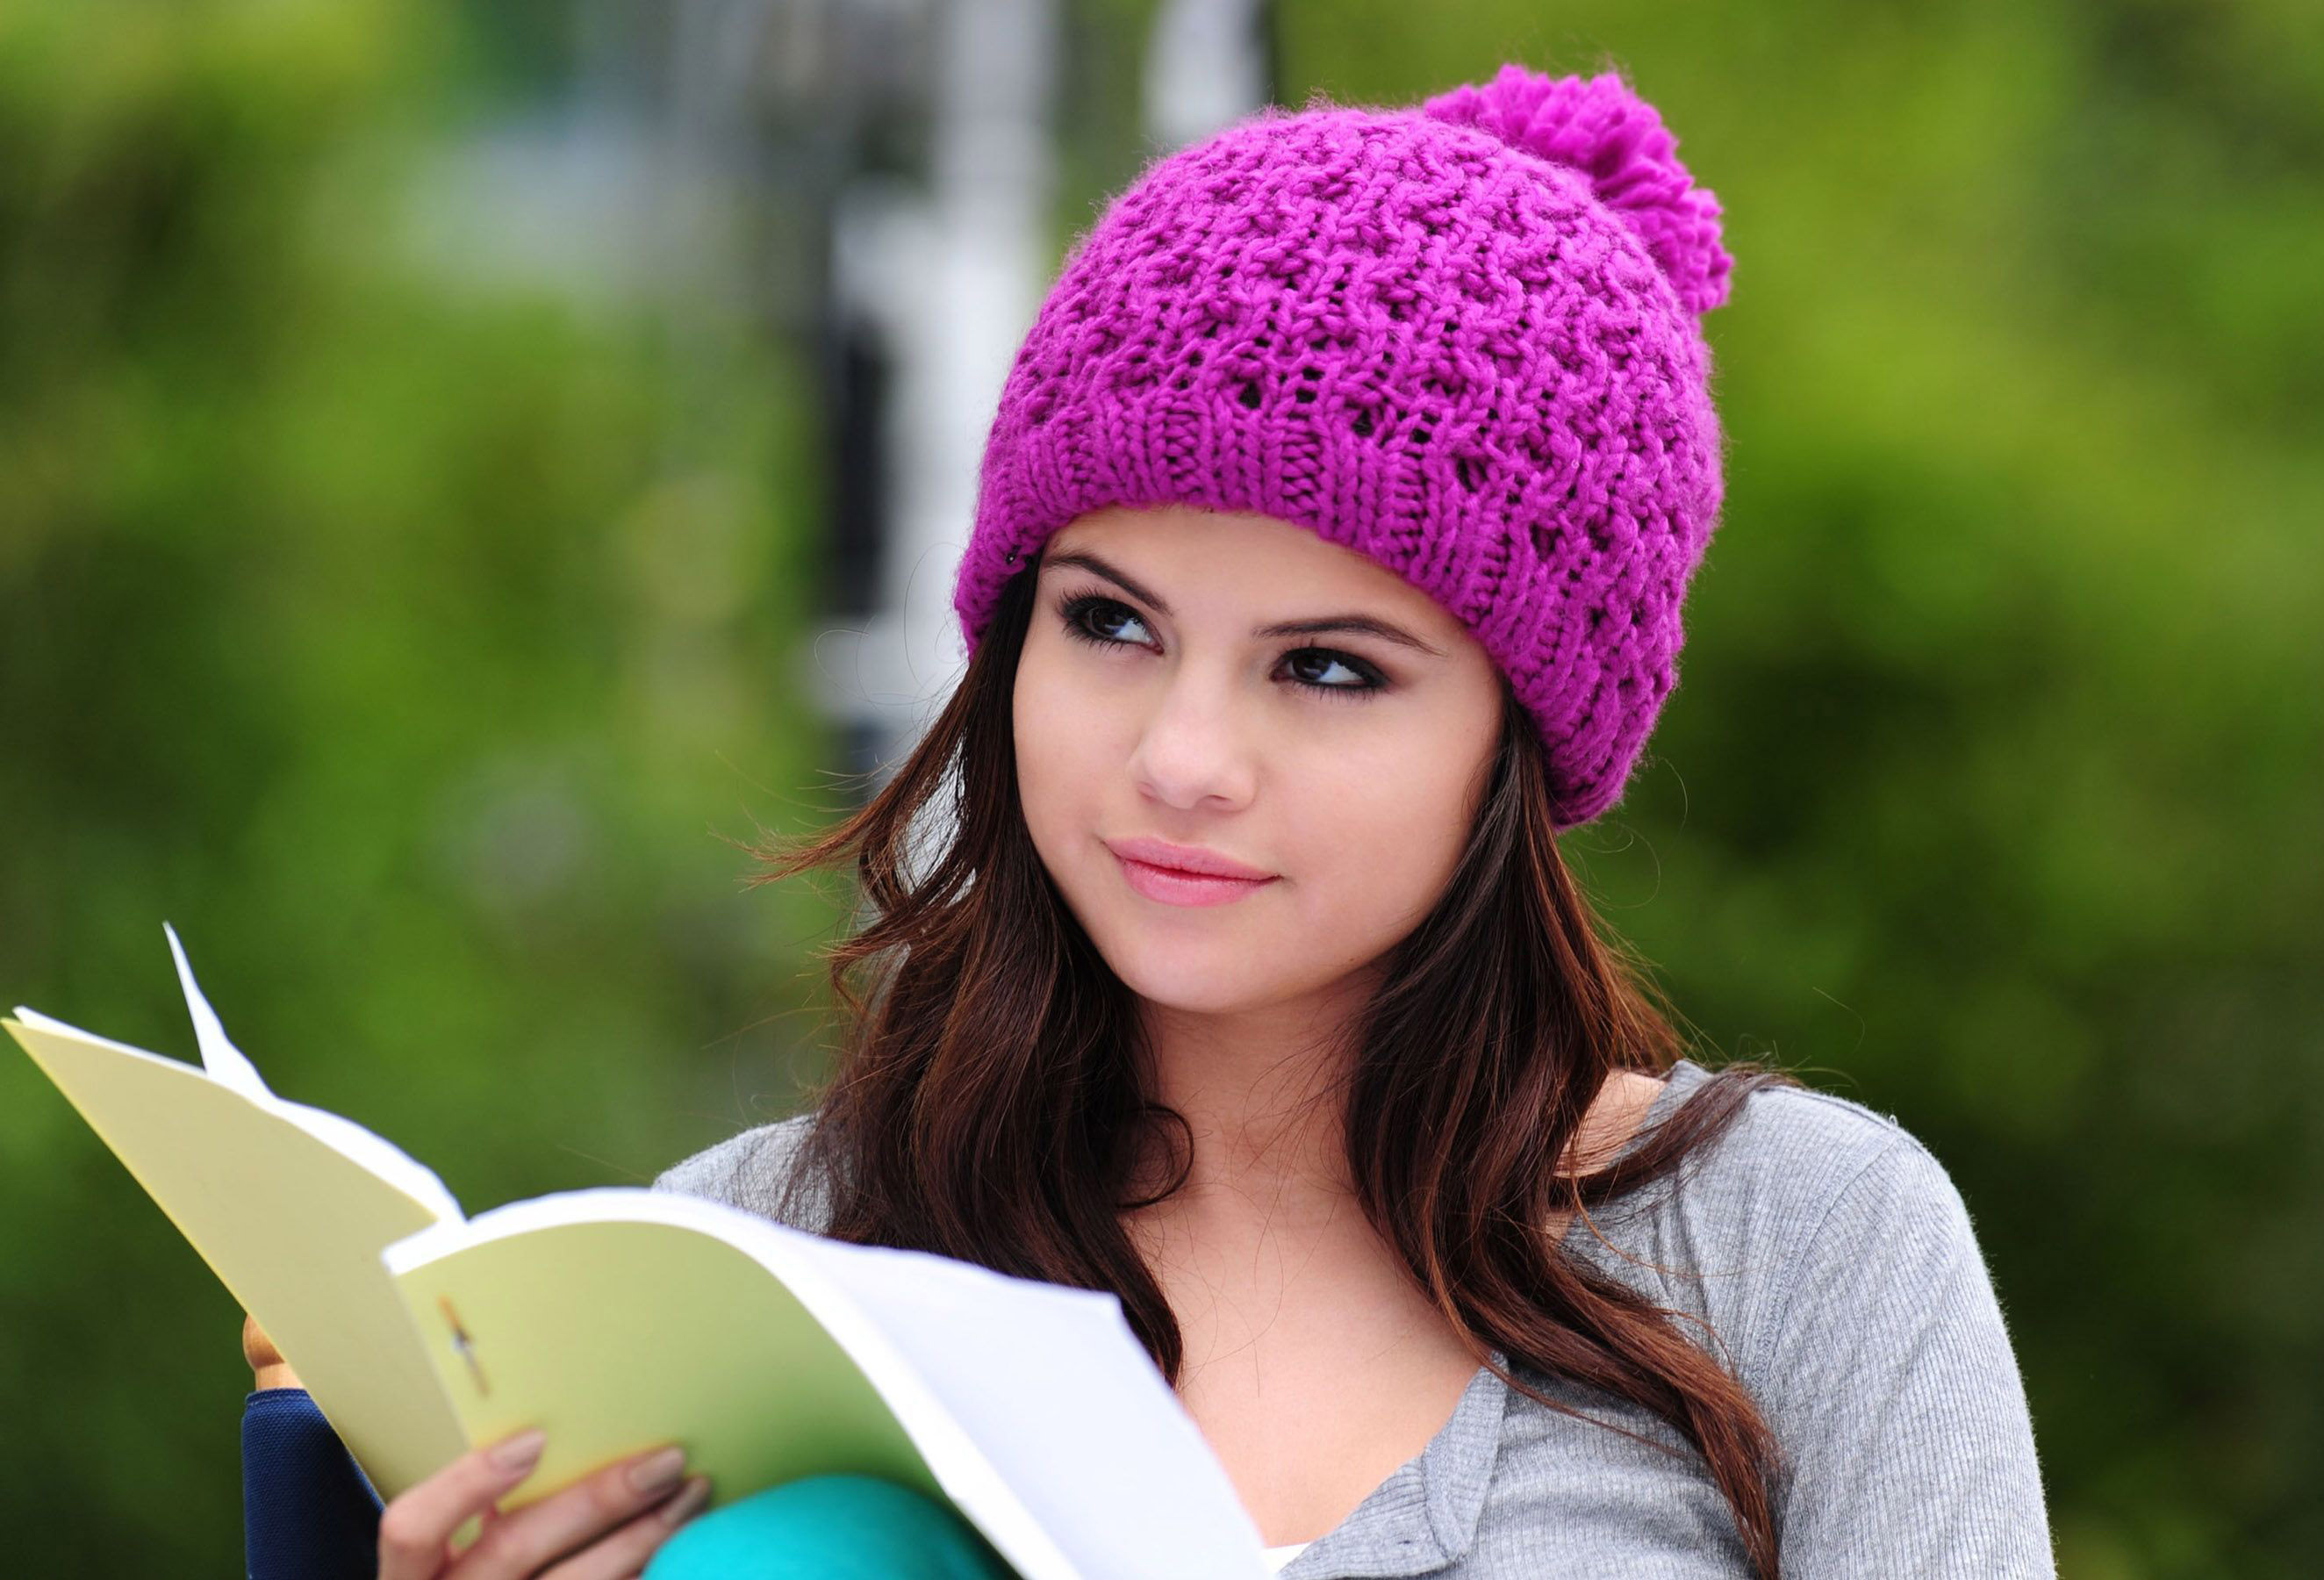 Beautiful Selena Gomez Cute Look With Cap Background Desktop Computer Hd Free Pictures